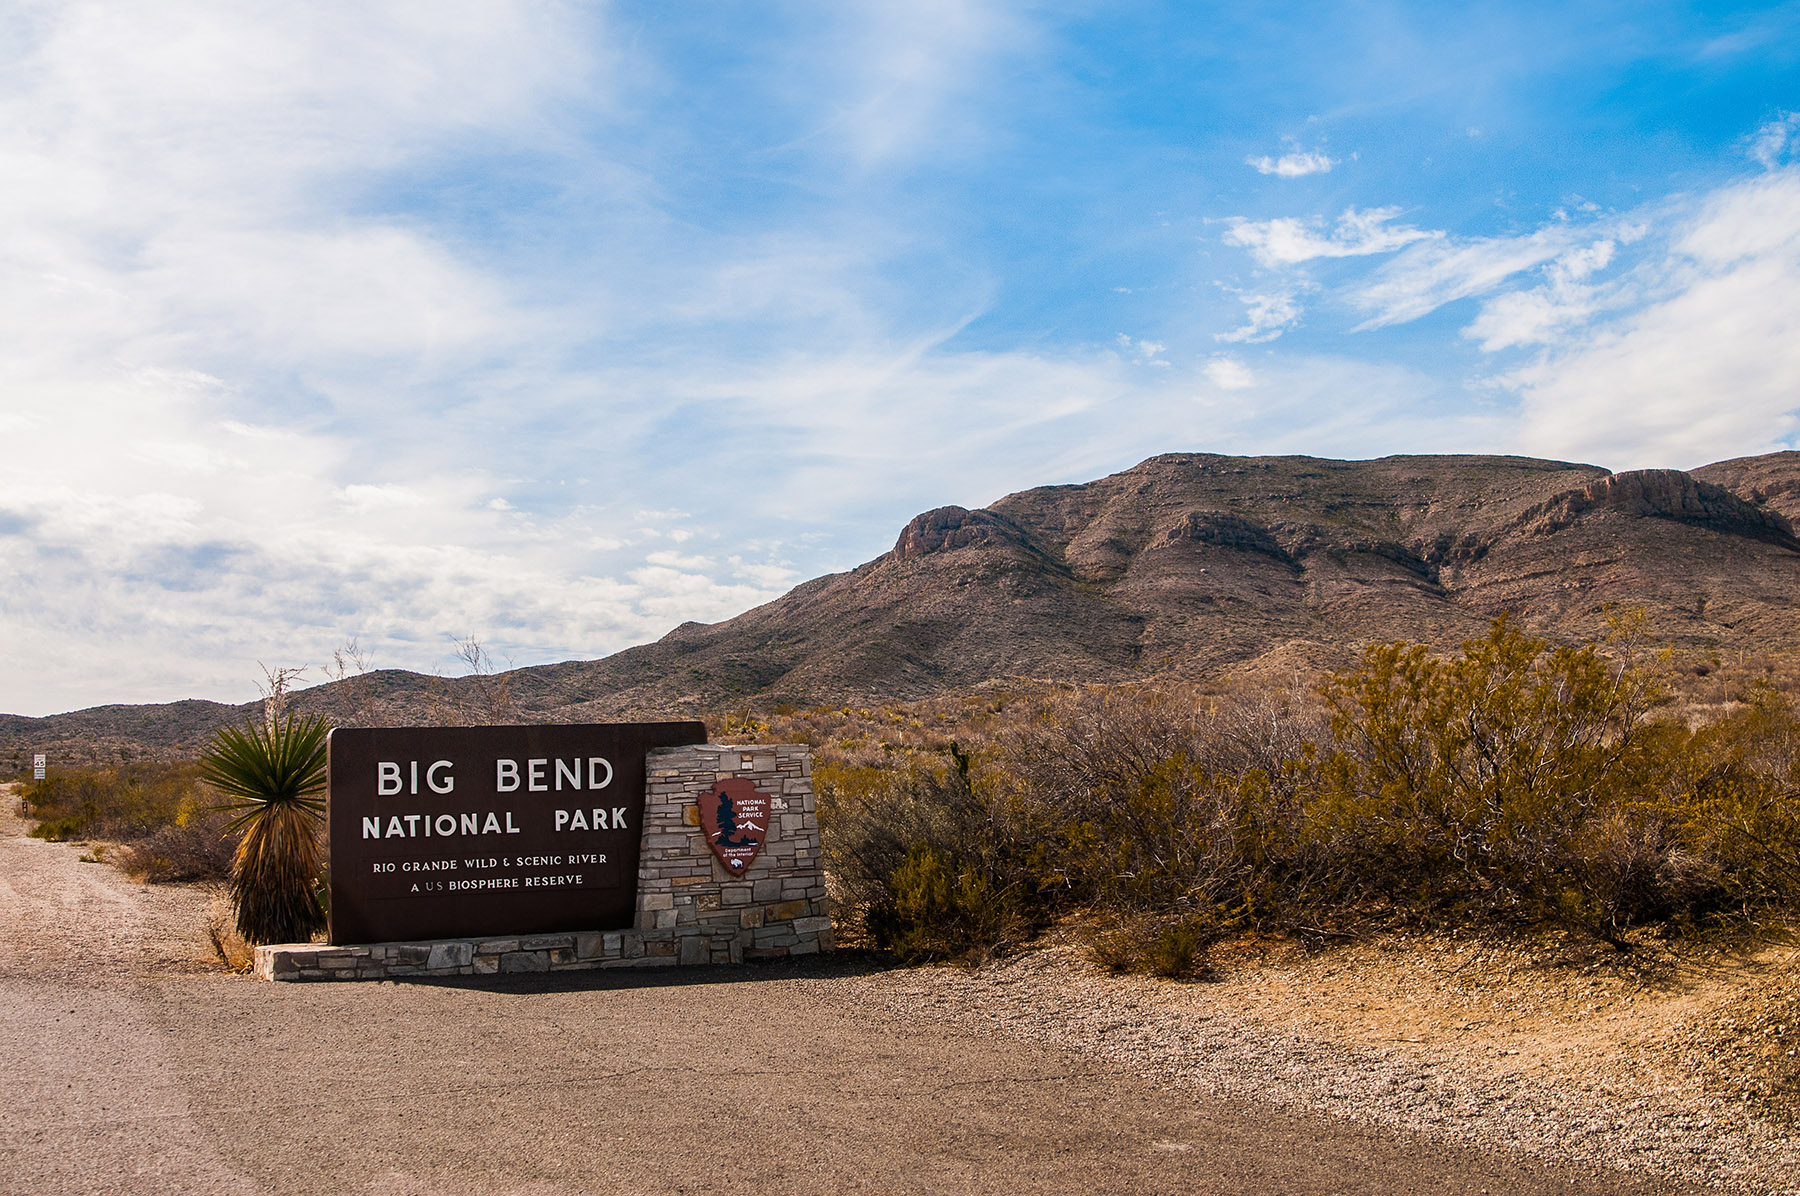 BigBend_Entrance